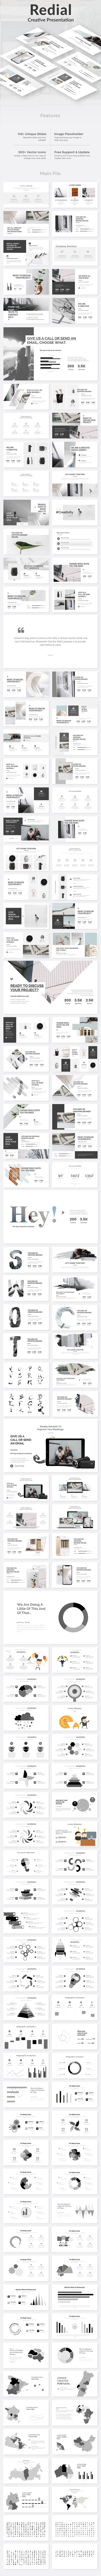 Redial Creative Google Slide Template - Google Slides Presentation Templates